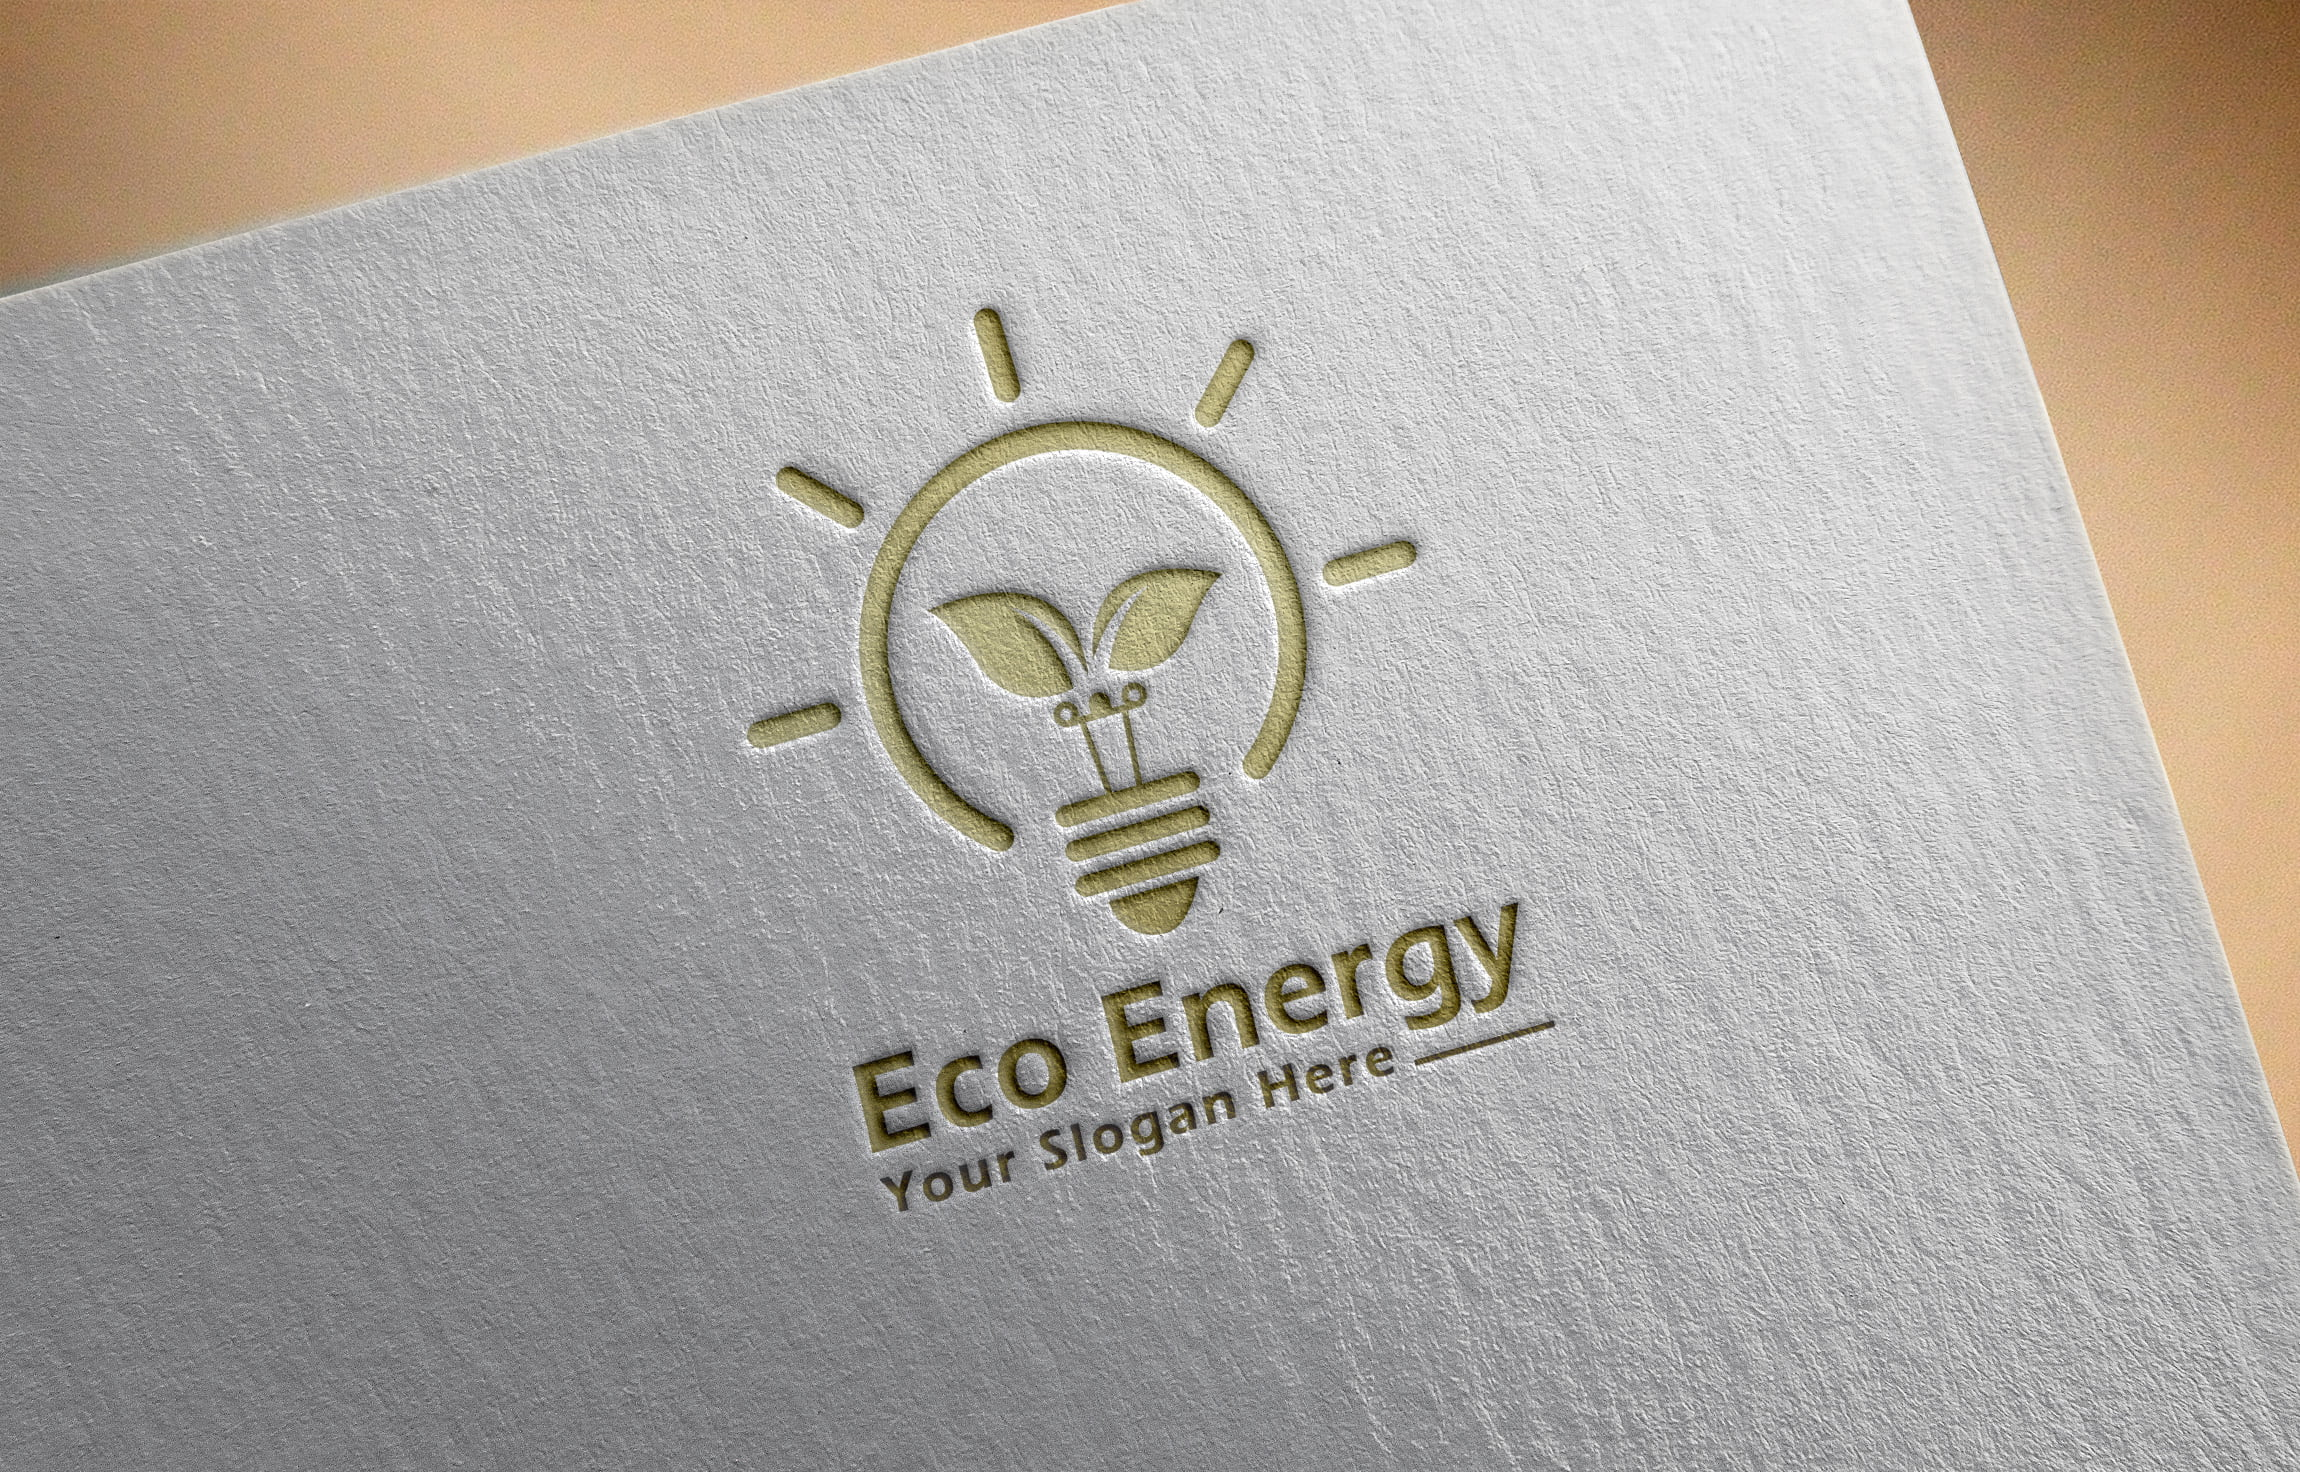 Eco-Energy-Light-Bulb-with-Leaves-Logo-Design